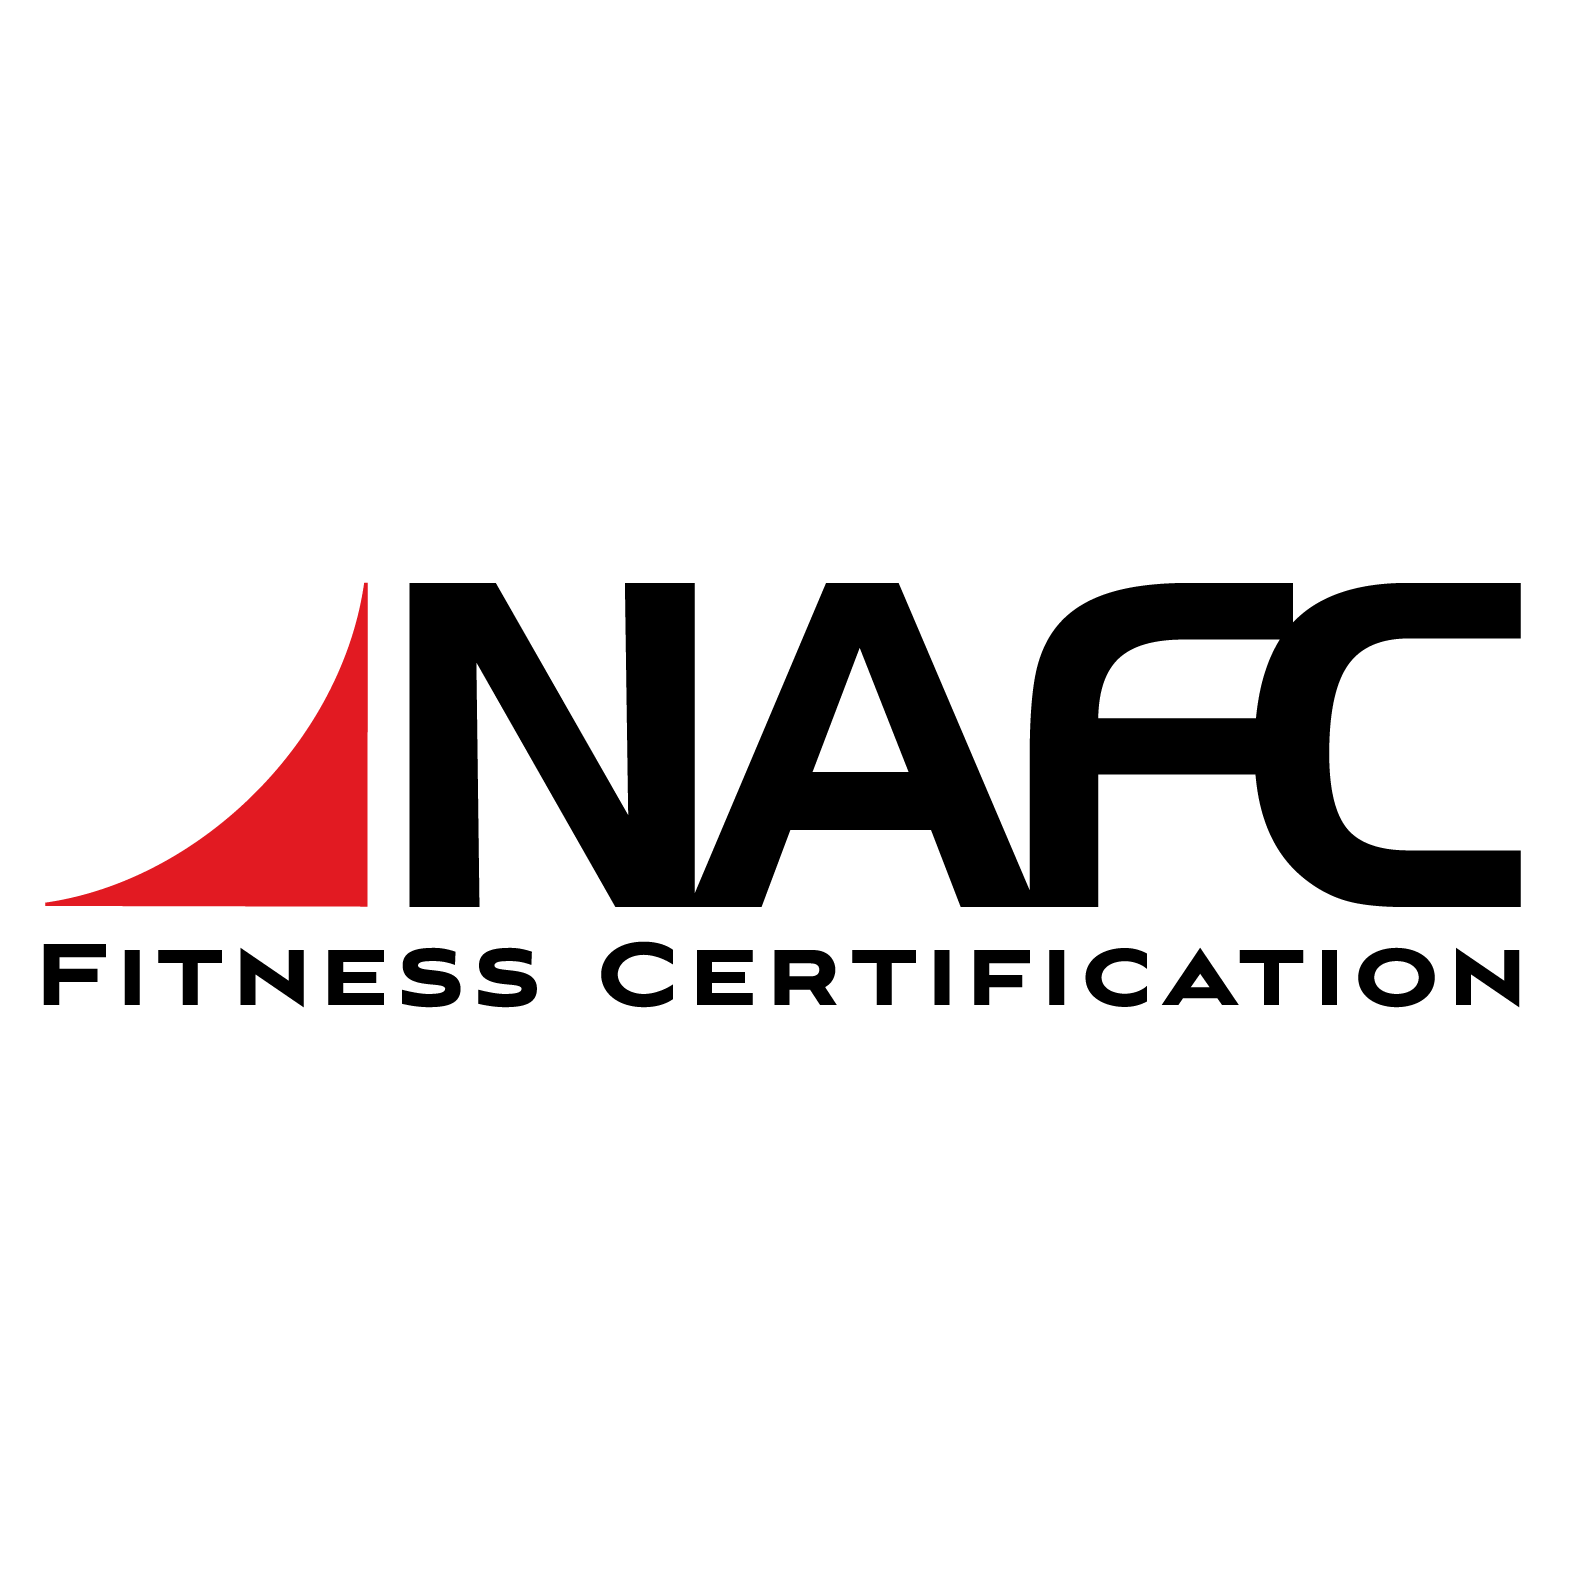 NAFC (National Association for Fitness Certification)